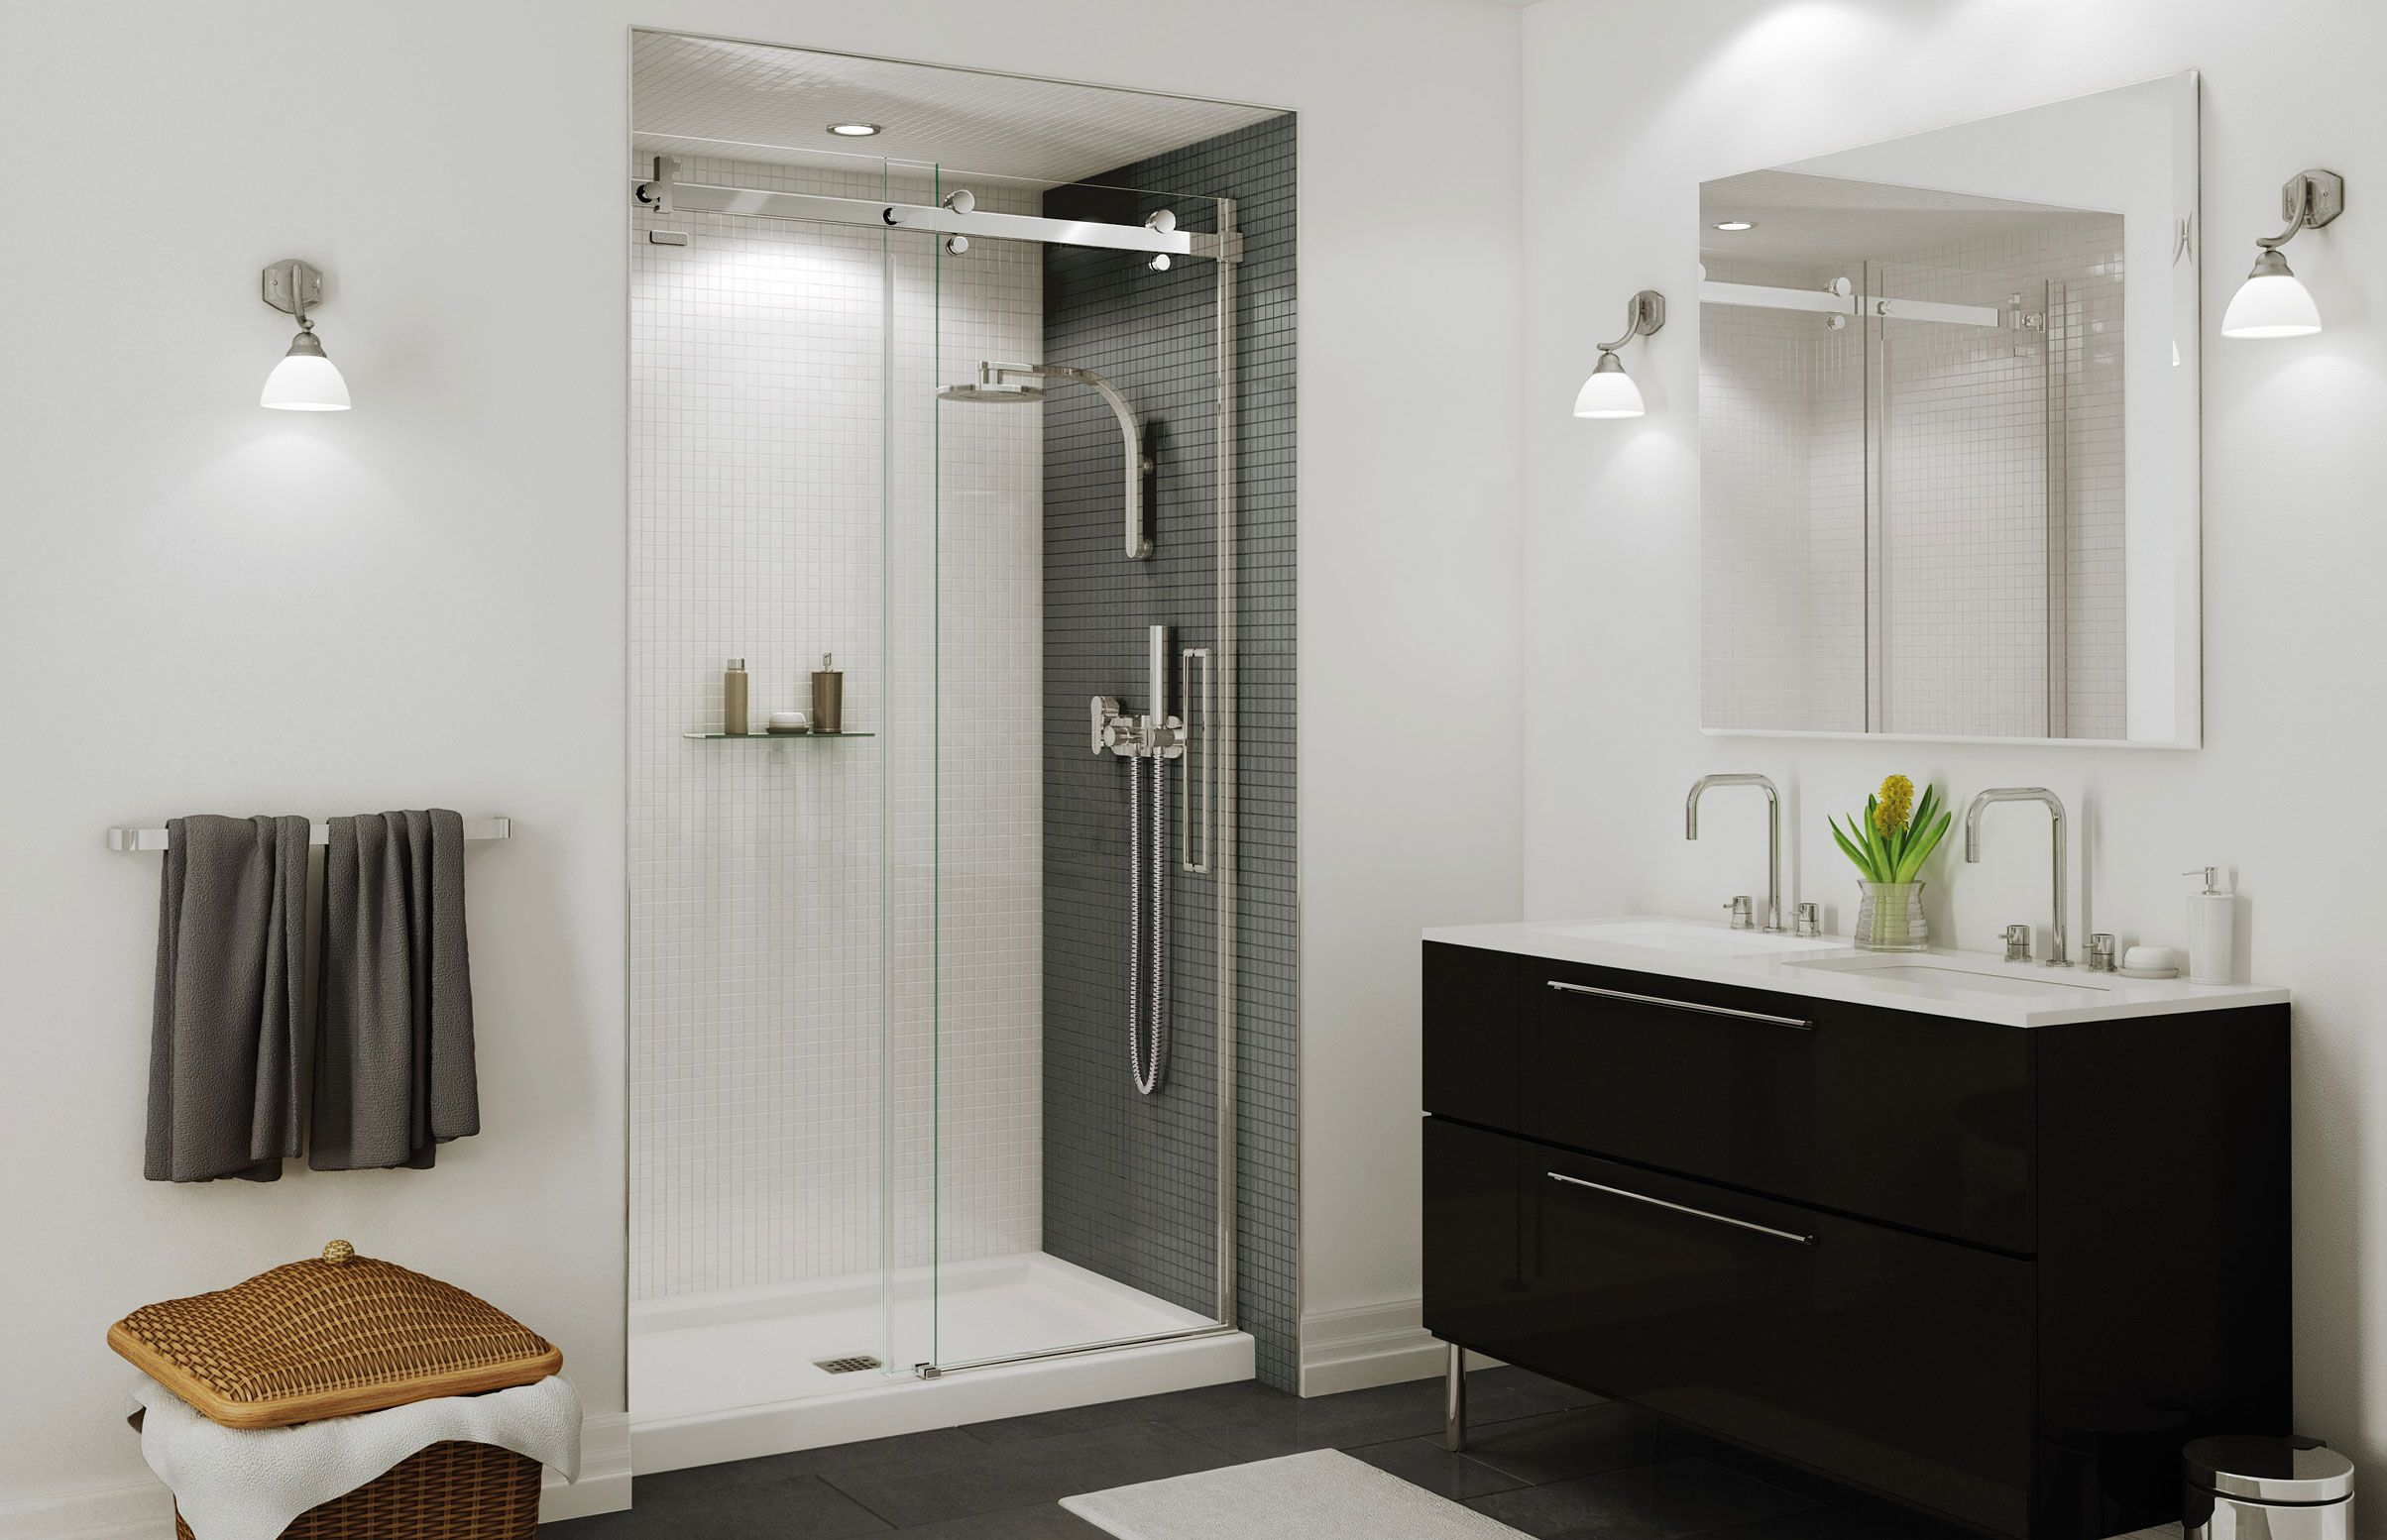 Halo sliding door -to maximize space in upstairs bathroom   For the ...